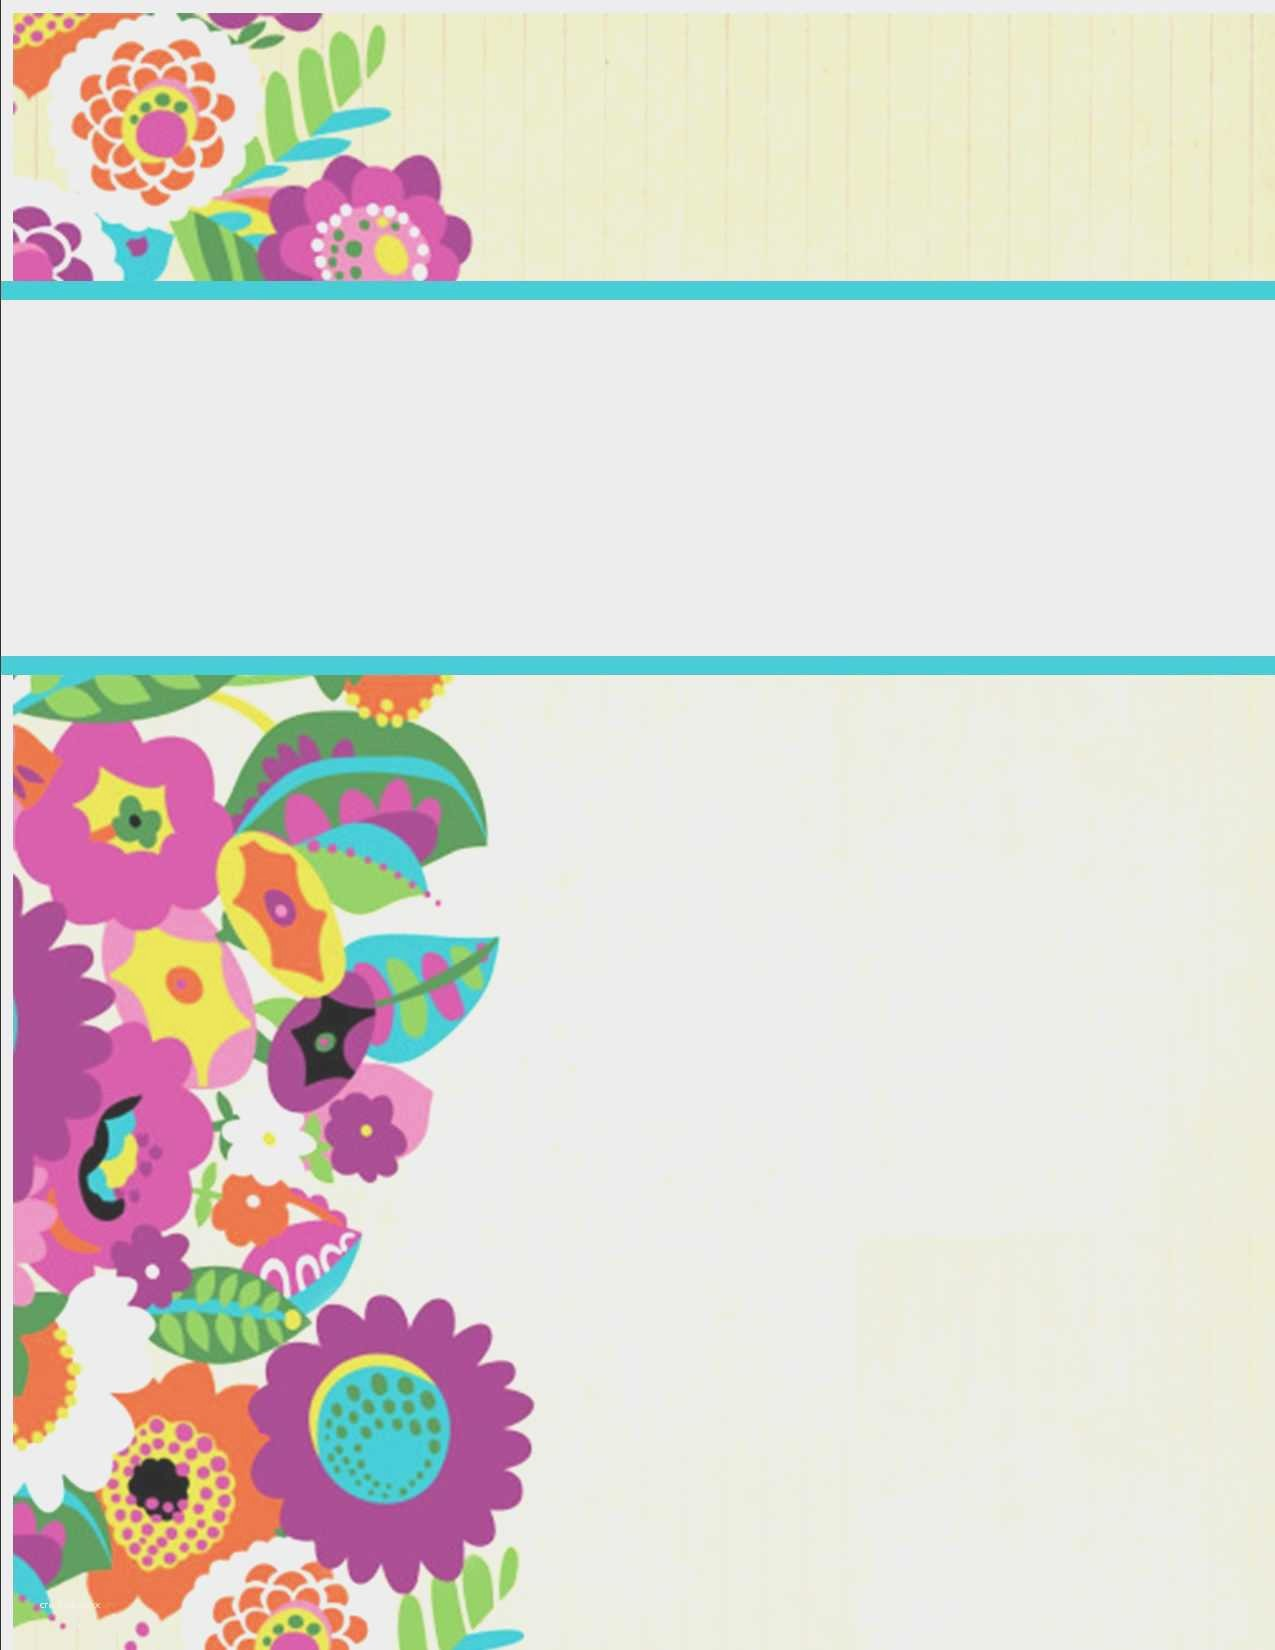 Wedding Binder Cover Page Template Fresh Wedding Binder Cover Template New My Cute Binder Covers